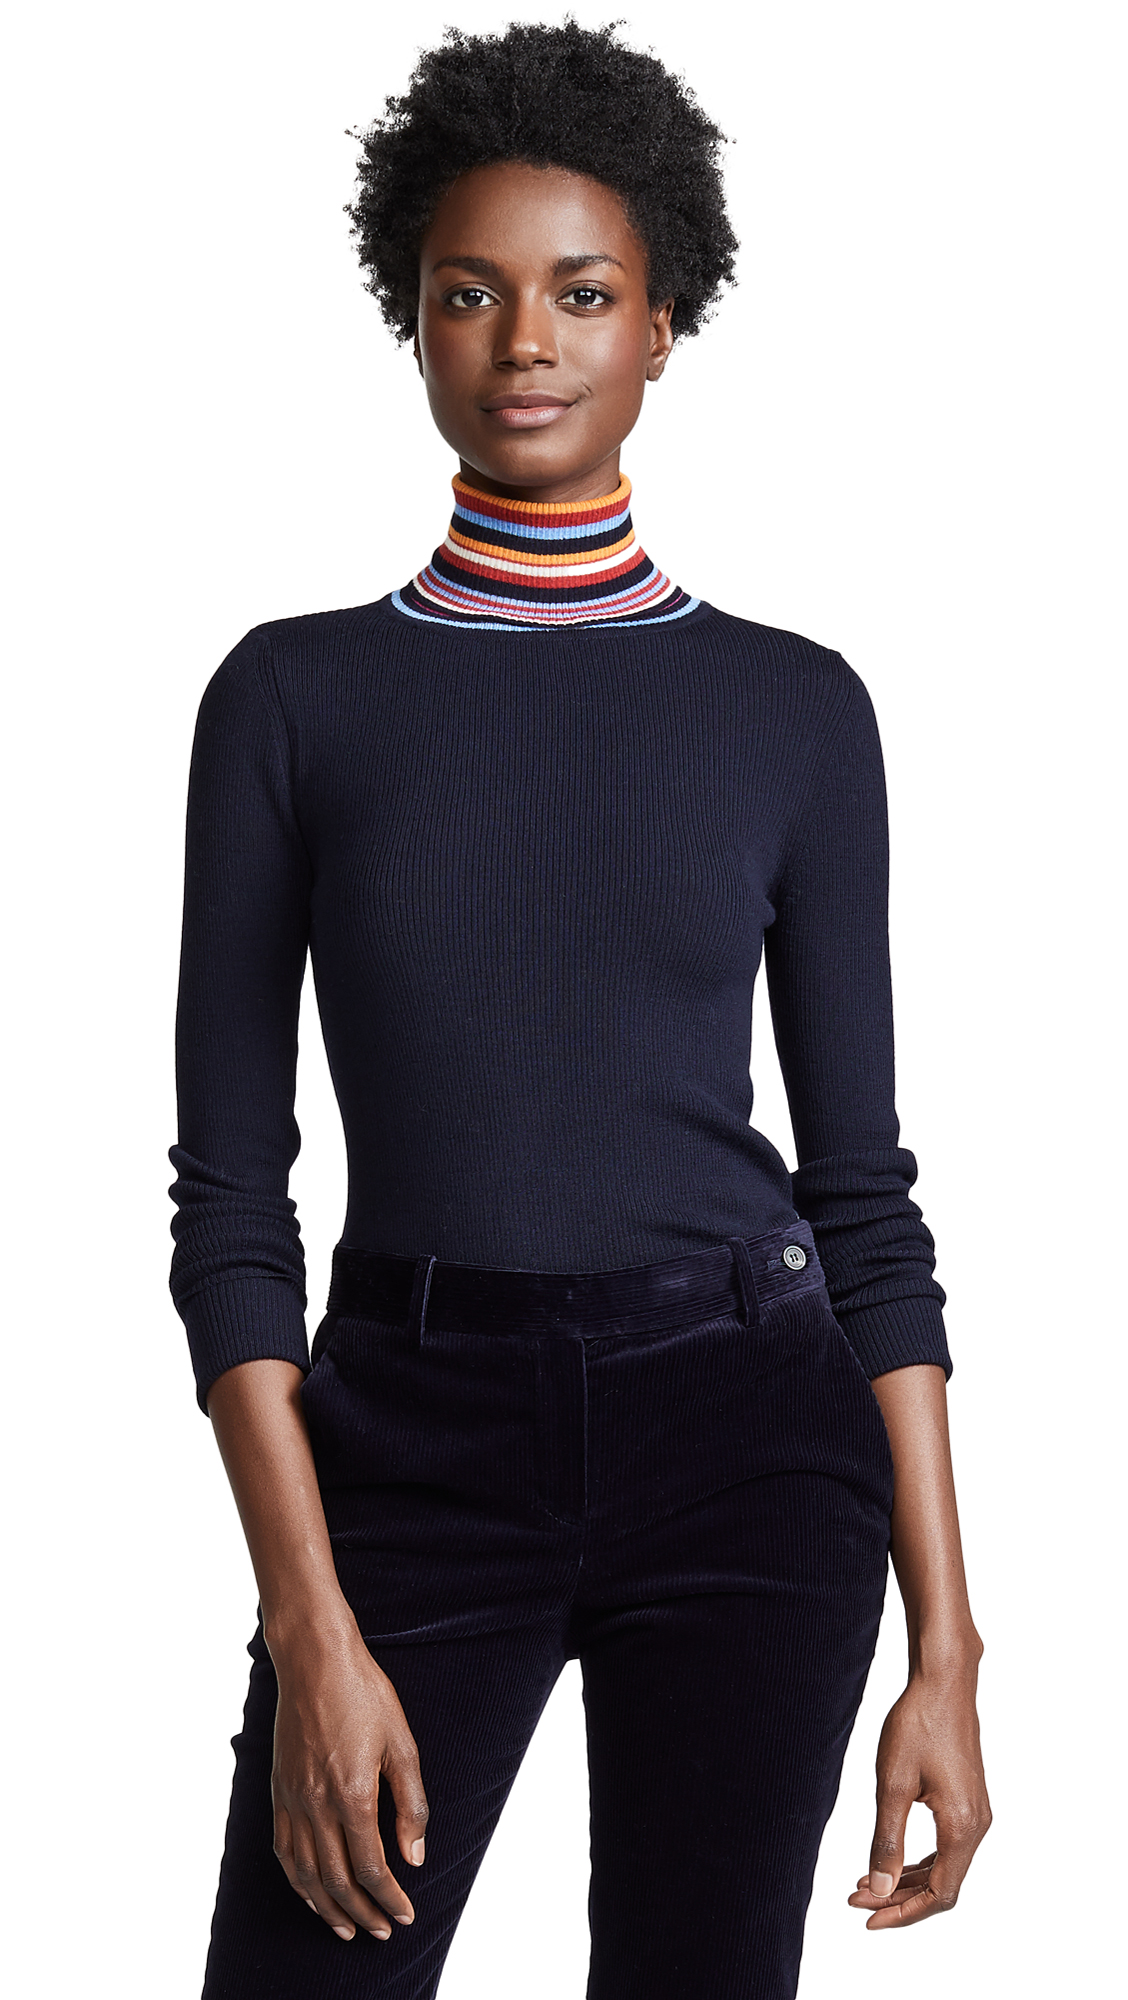 Tory Burch Alana Sweater In Tory Navy